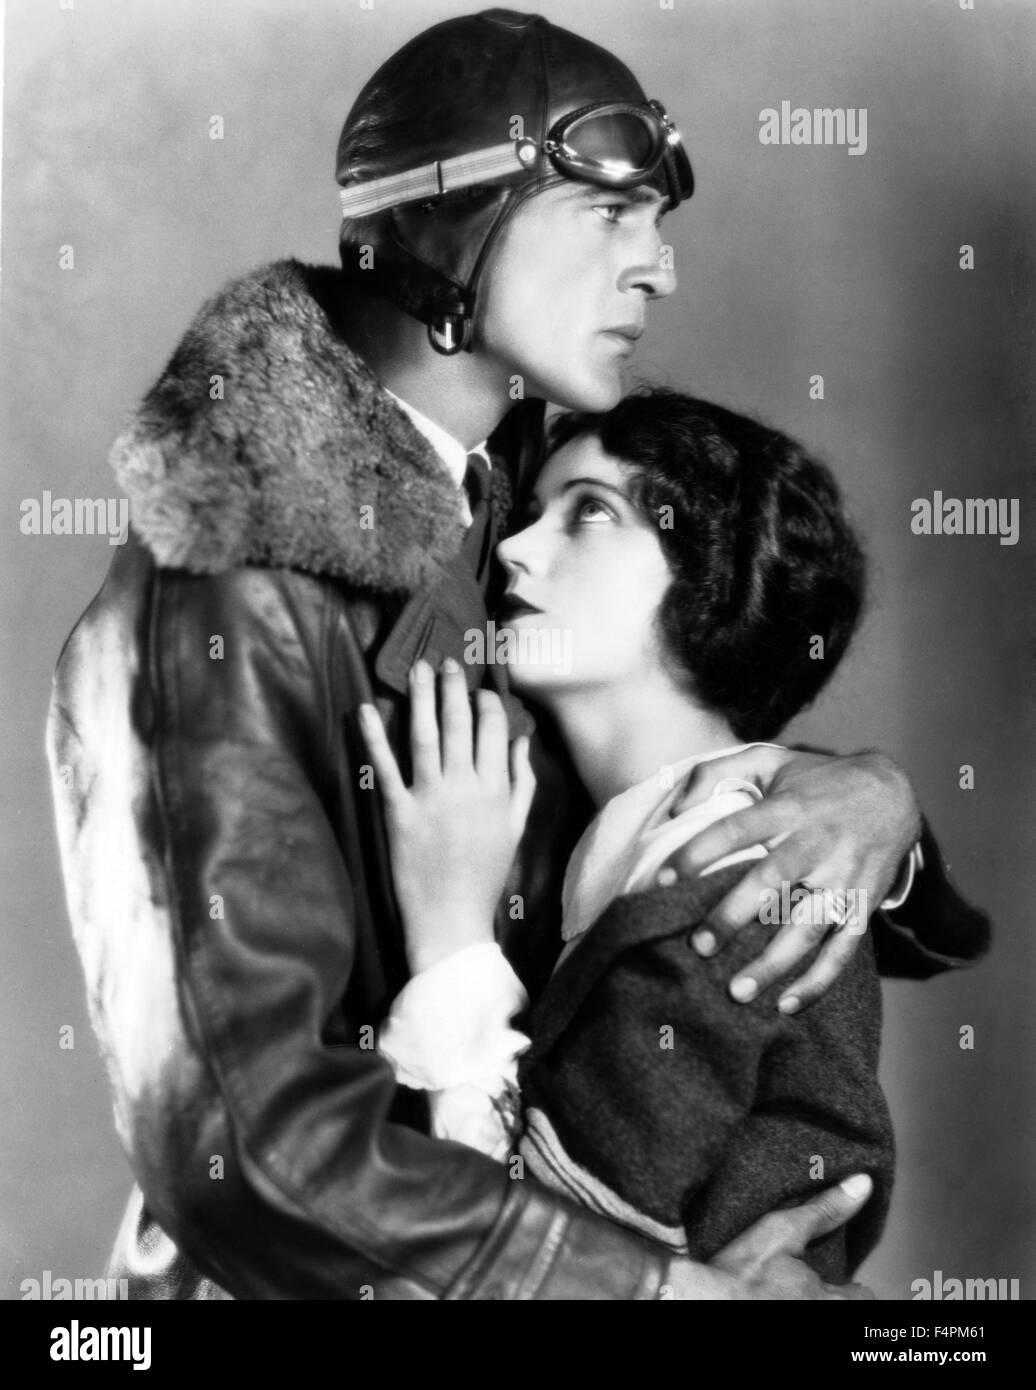 Fay Wray and Gary Cooper / The Legion of the Condemned / 1928 directed by William A. Wellman [Paramount Pictures] - Stock Image